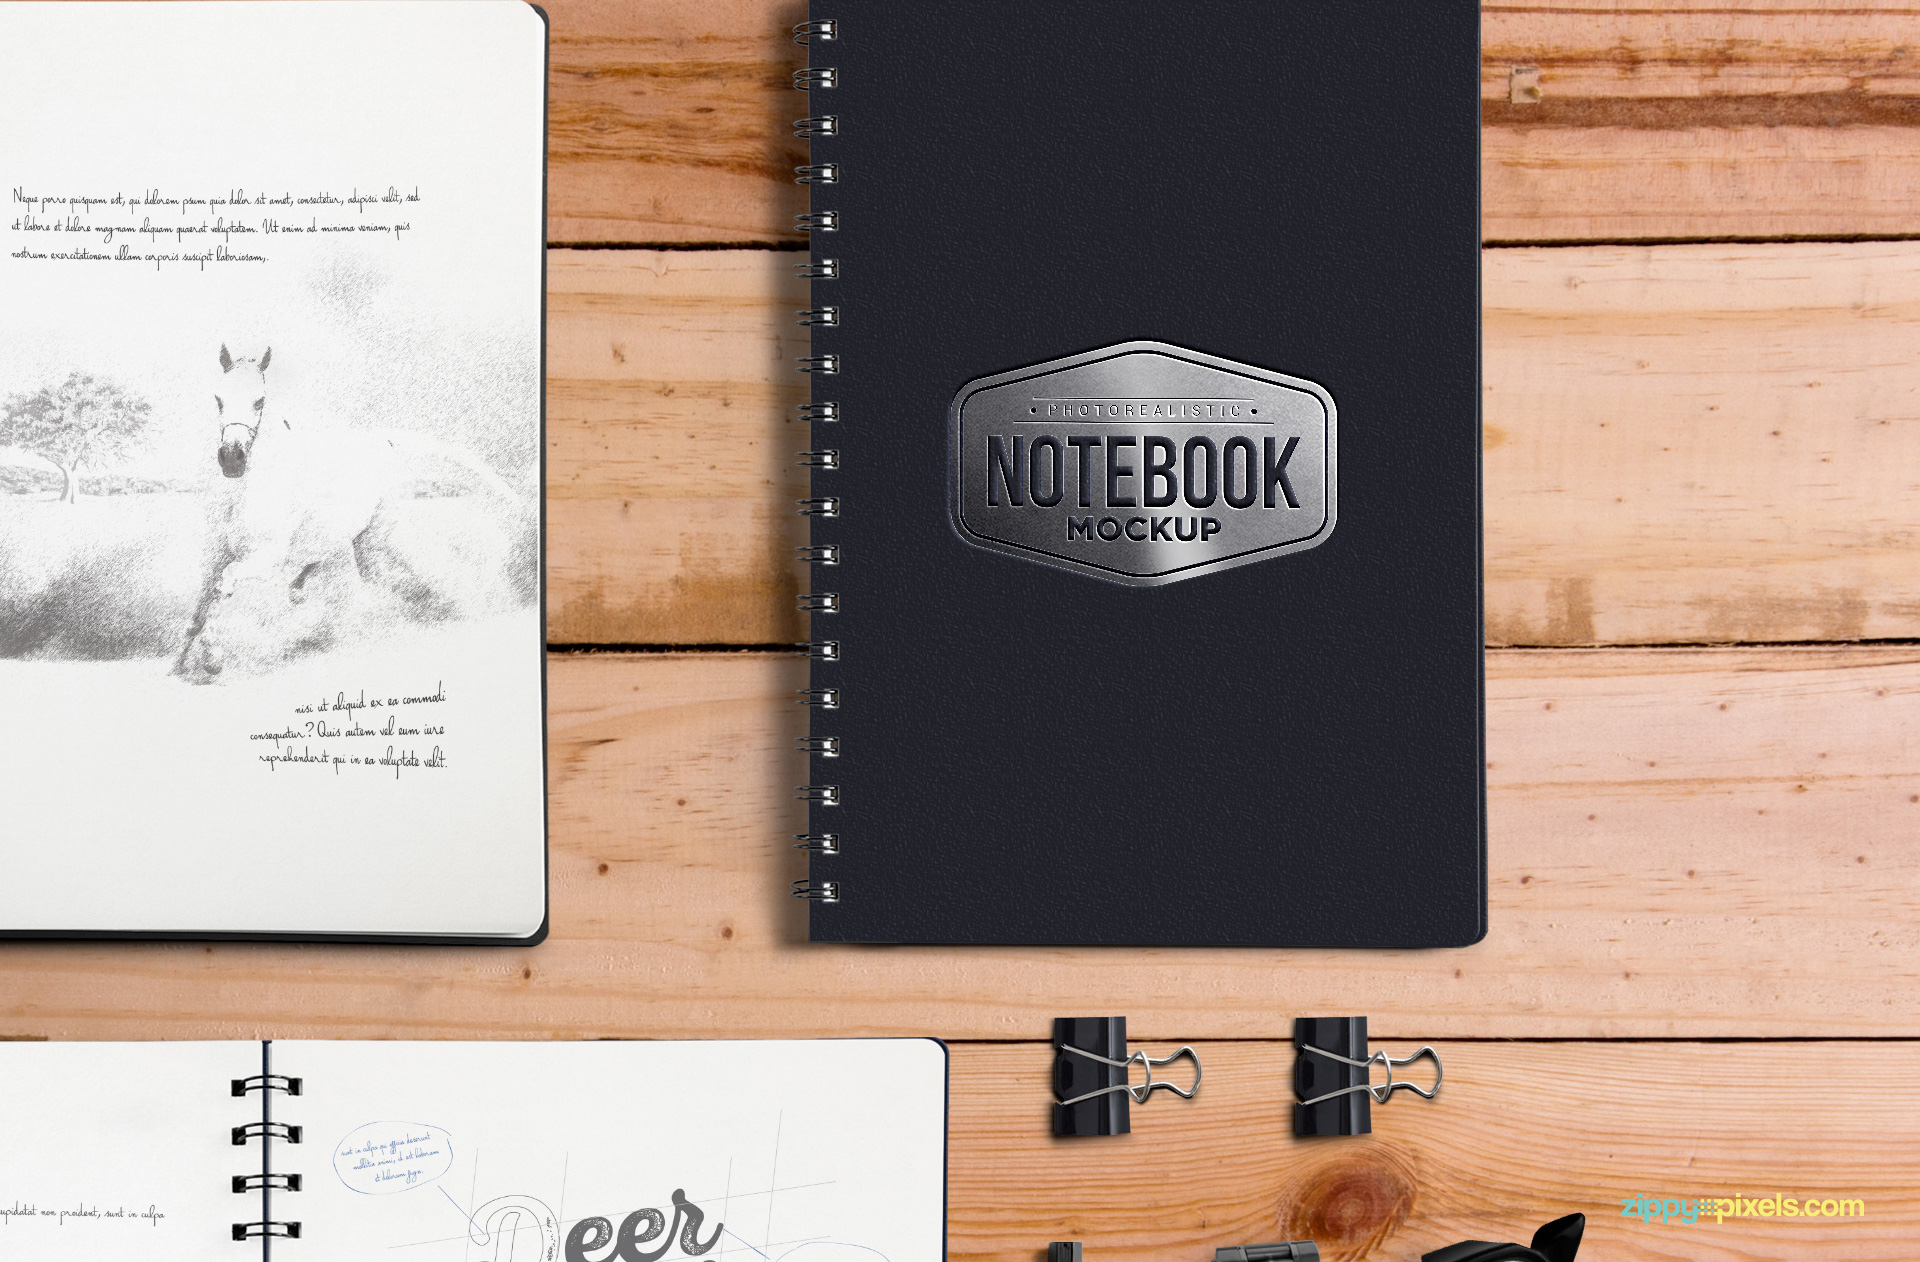 02-free-customizable-notebook-mockup-824x542